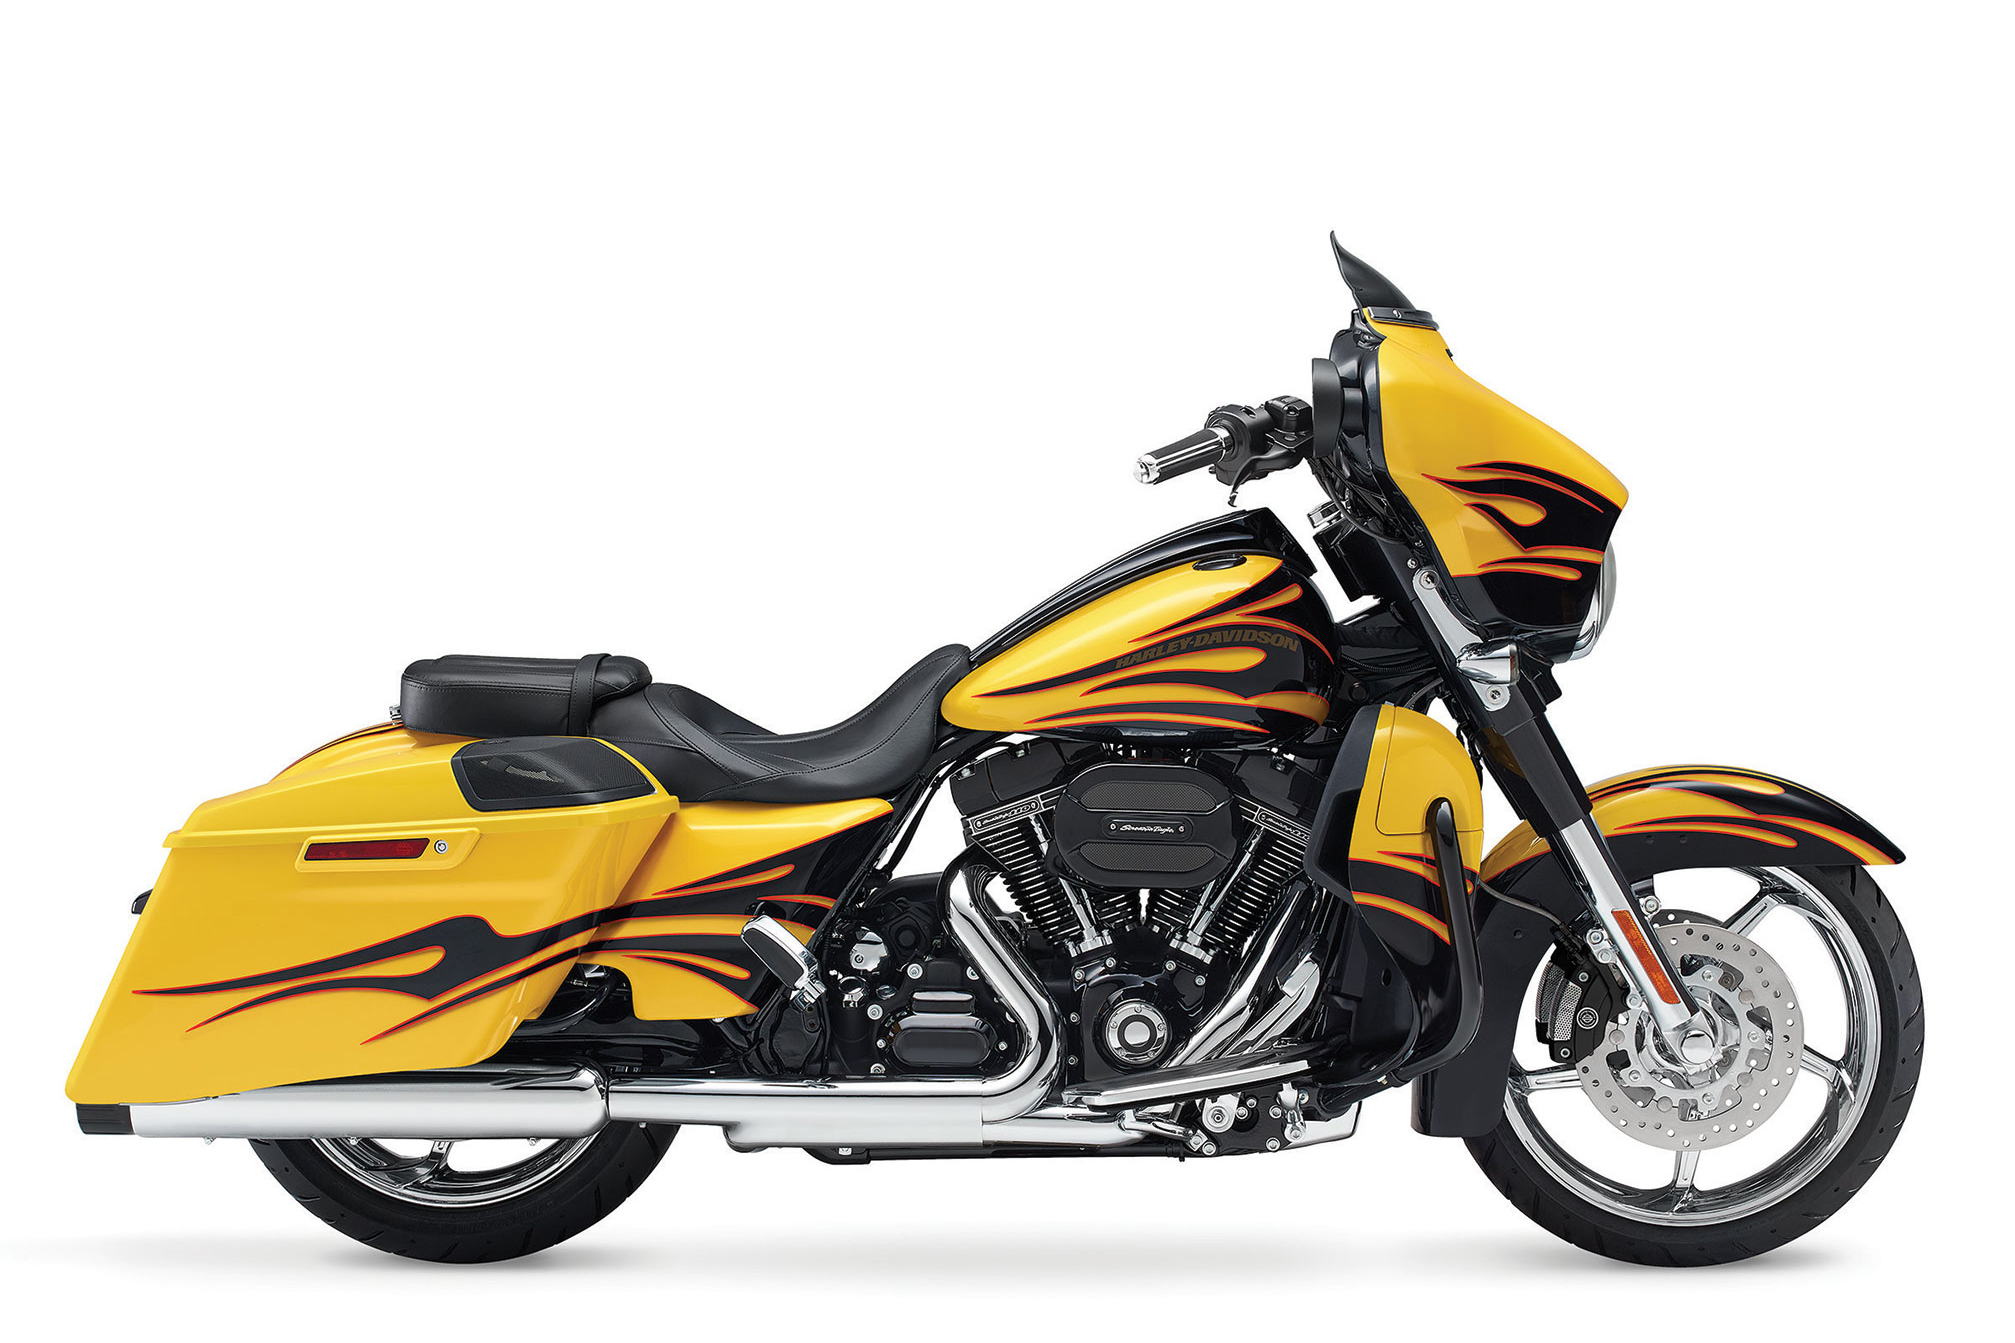 Top 10 Heaviest Current Production Bikes Visordown 1100 Special Field World39s Largest Supplier Of Firearm Accessories